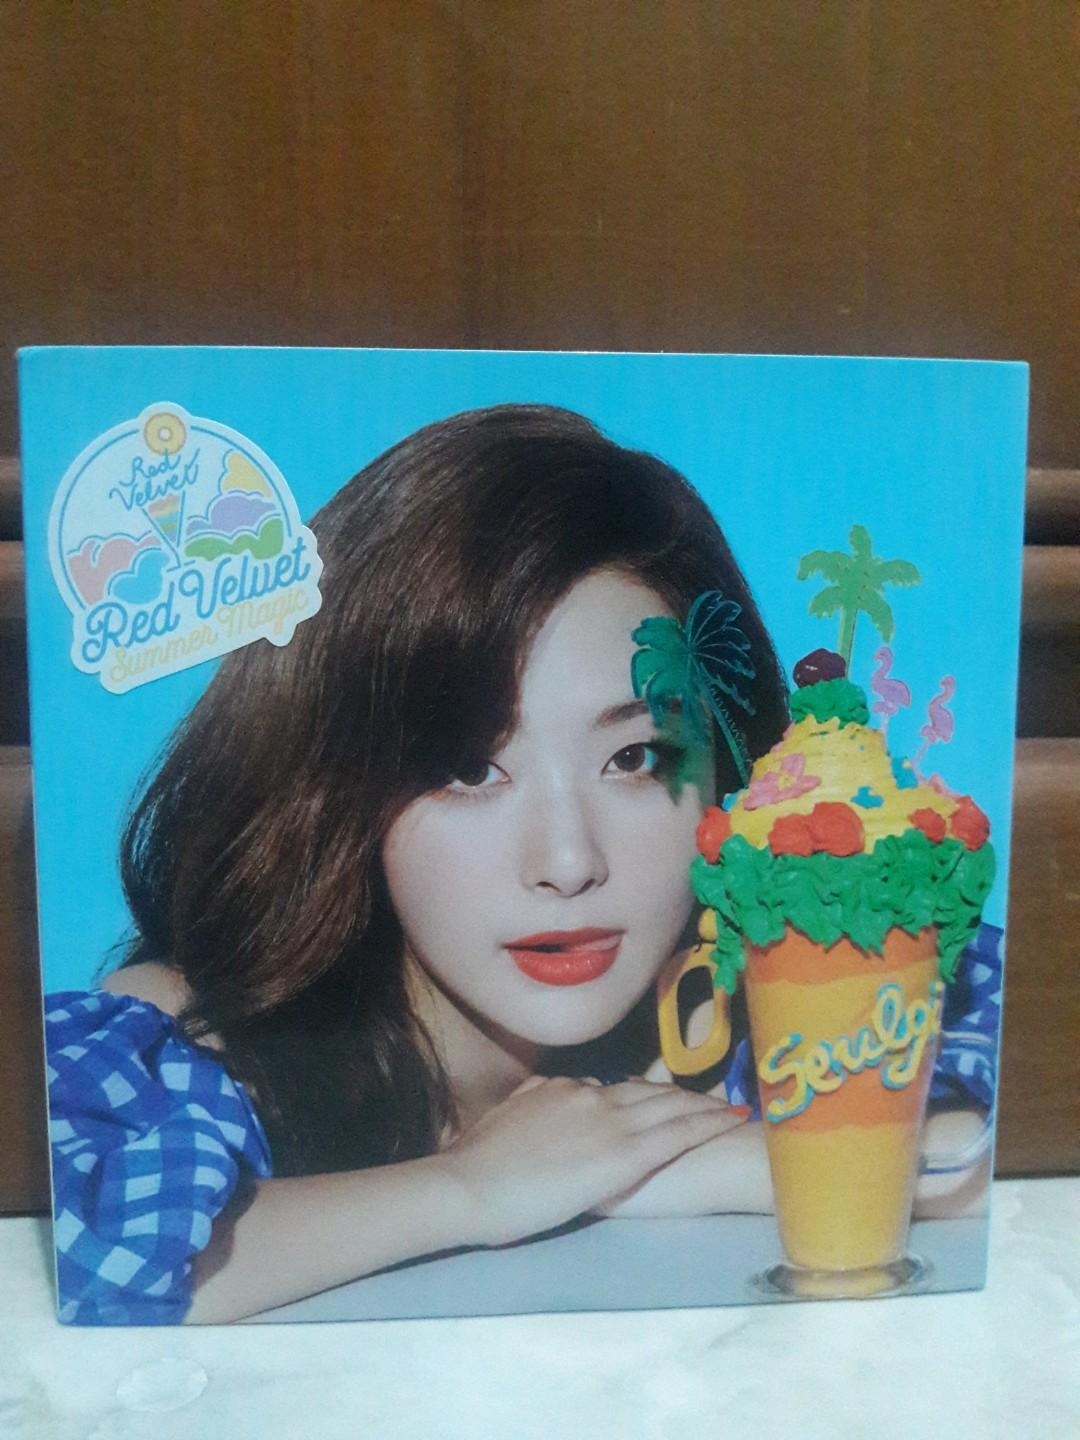 RED VELVET ALBUM SUMMER MAGIC SEULGI VERSION